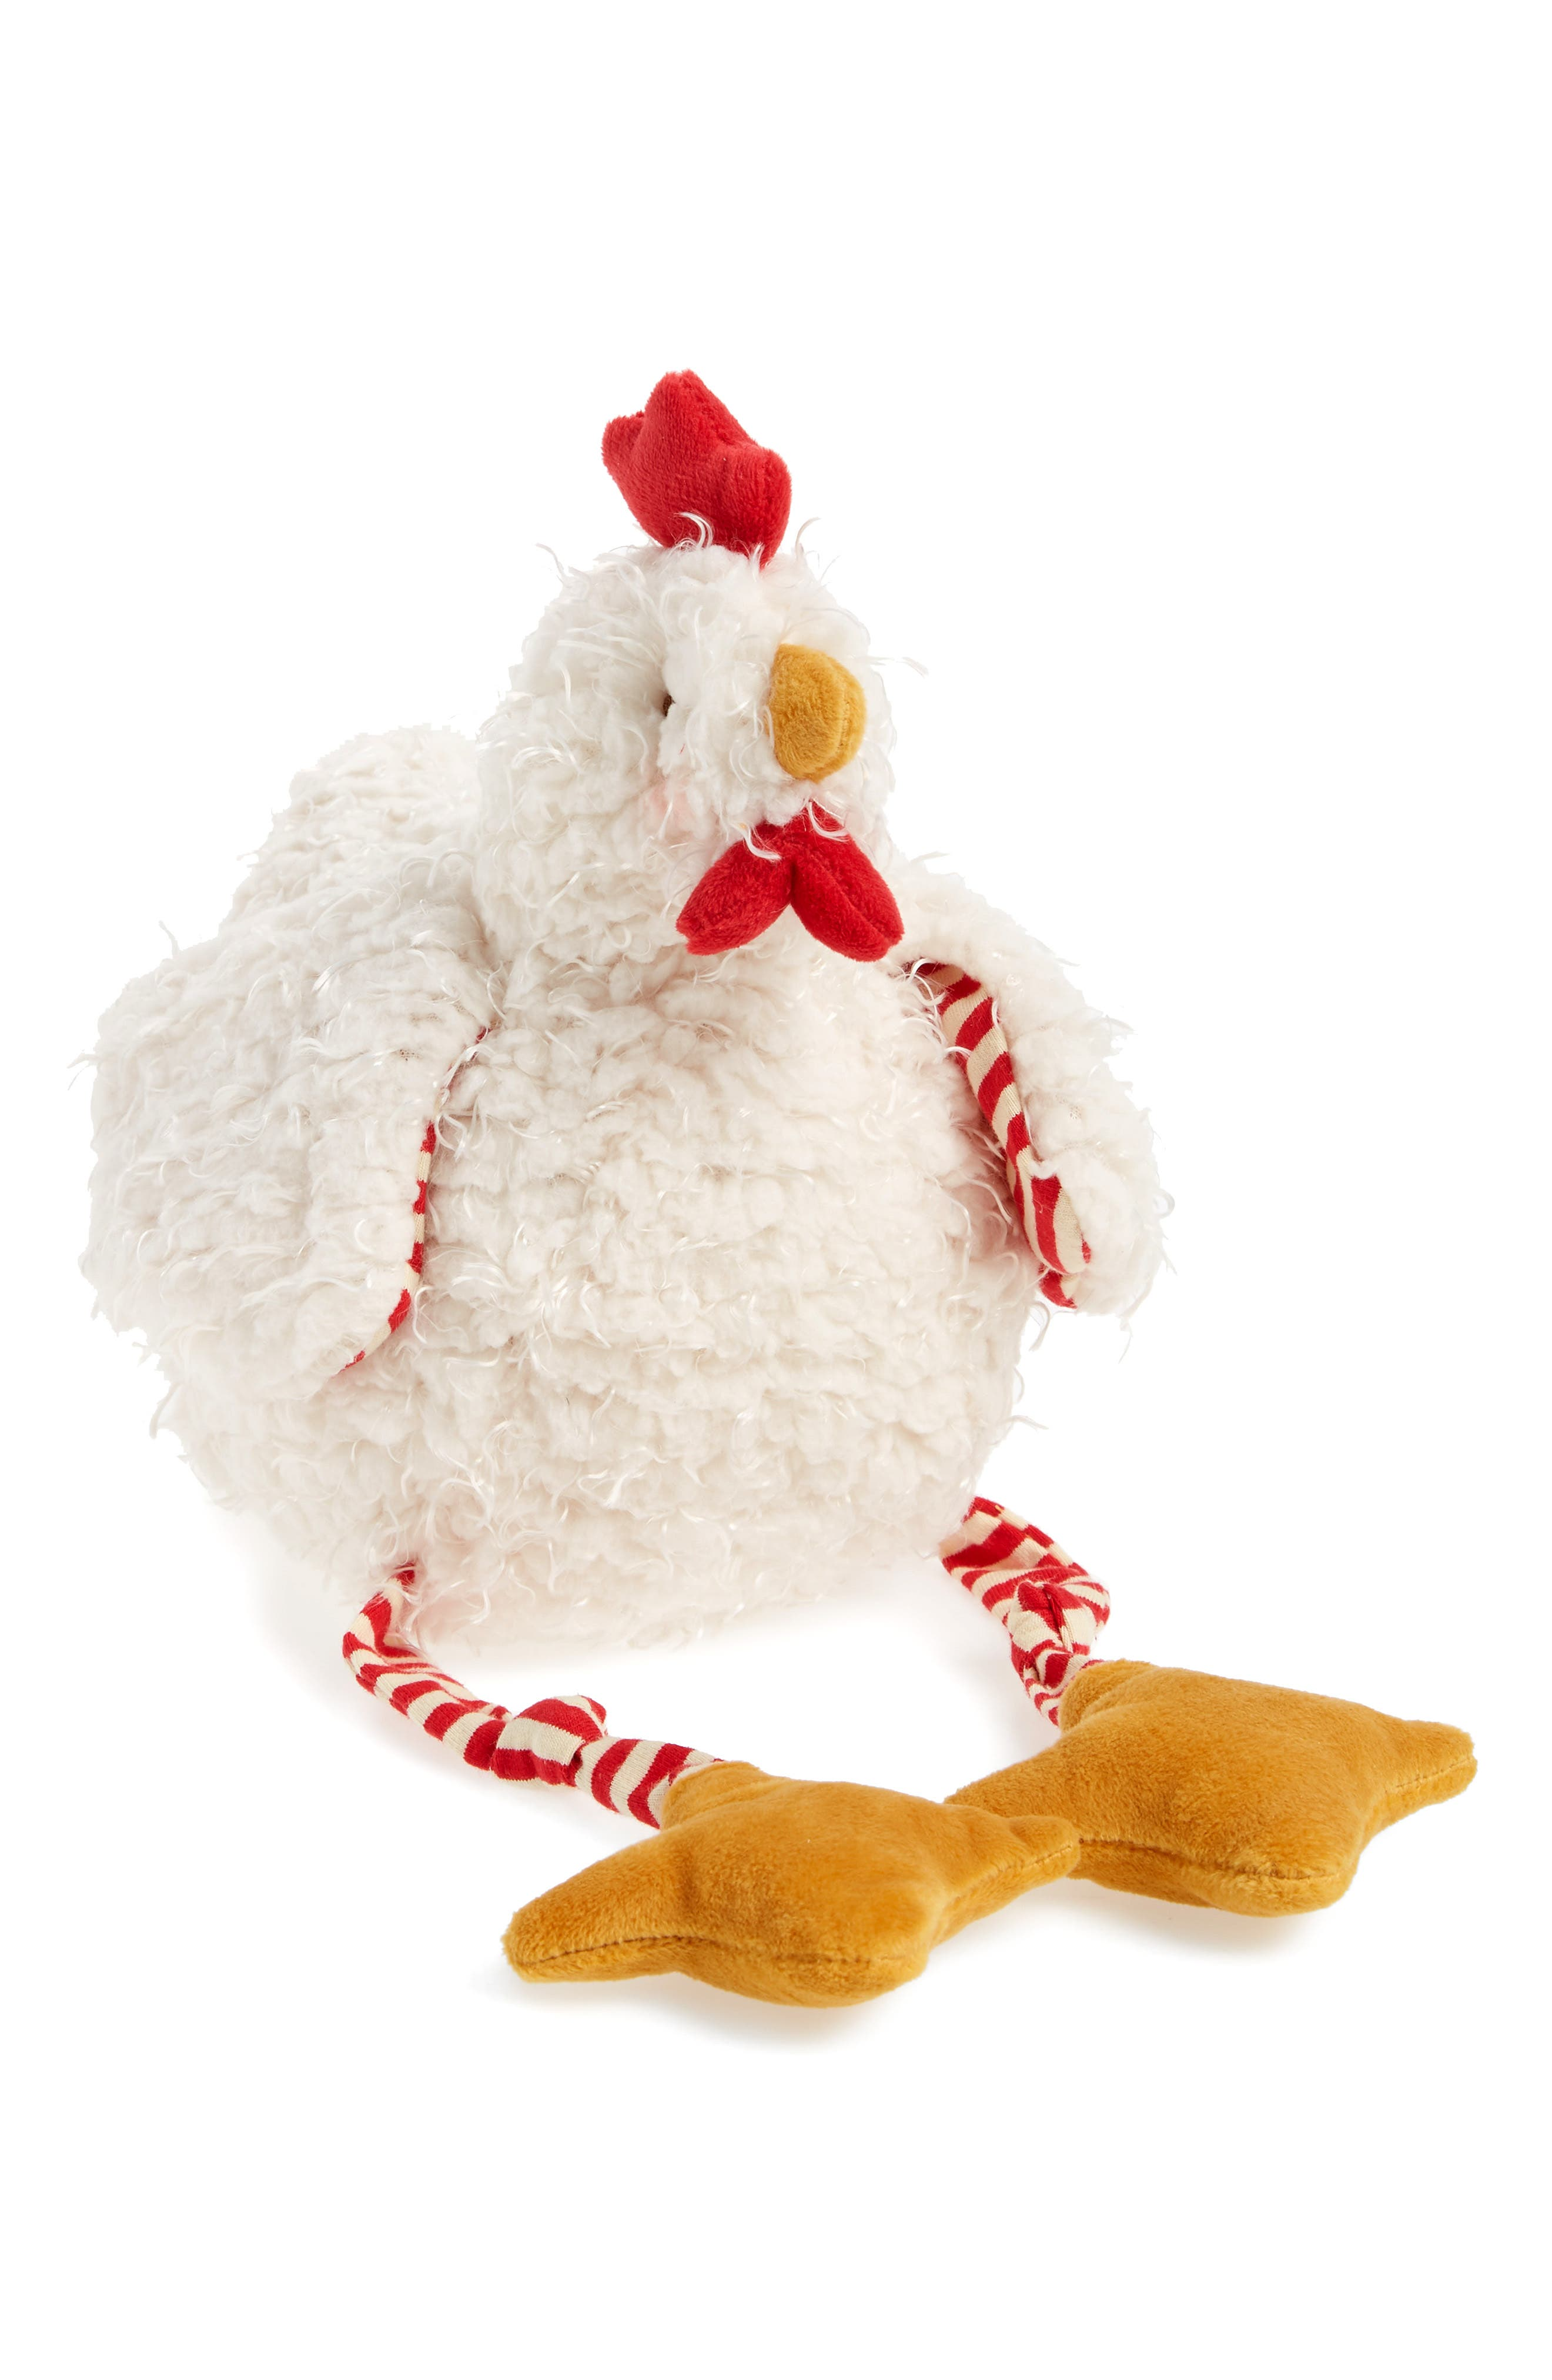 Clucky Chicken Stuffed Animal,                             Main thumbnail 1, color,                             110